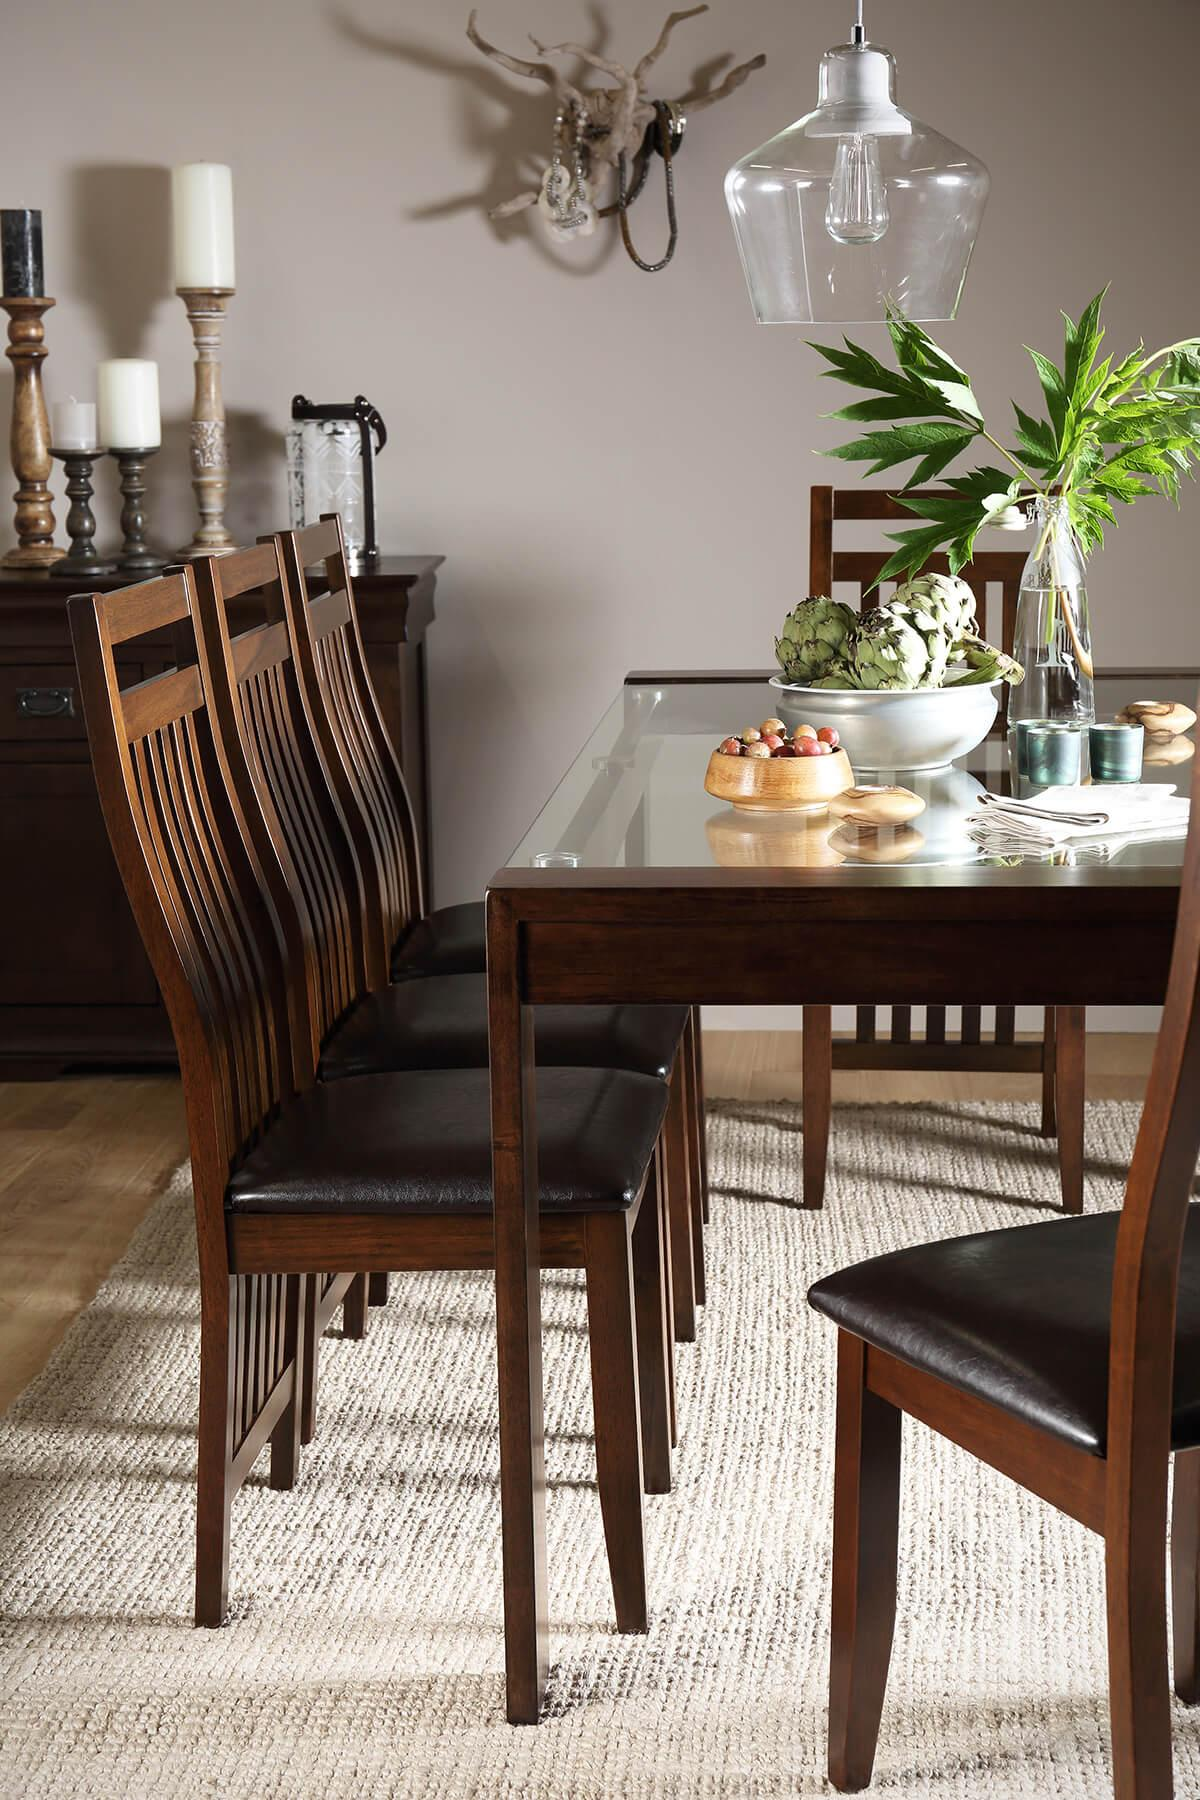 Tate 180cm Dark Wood and Glass Dining Table - with 6 Java Chairs (Brown Seat Pad)